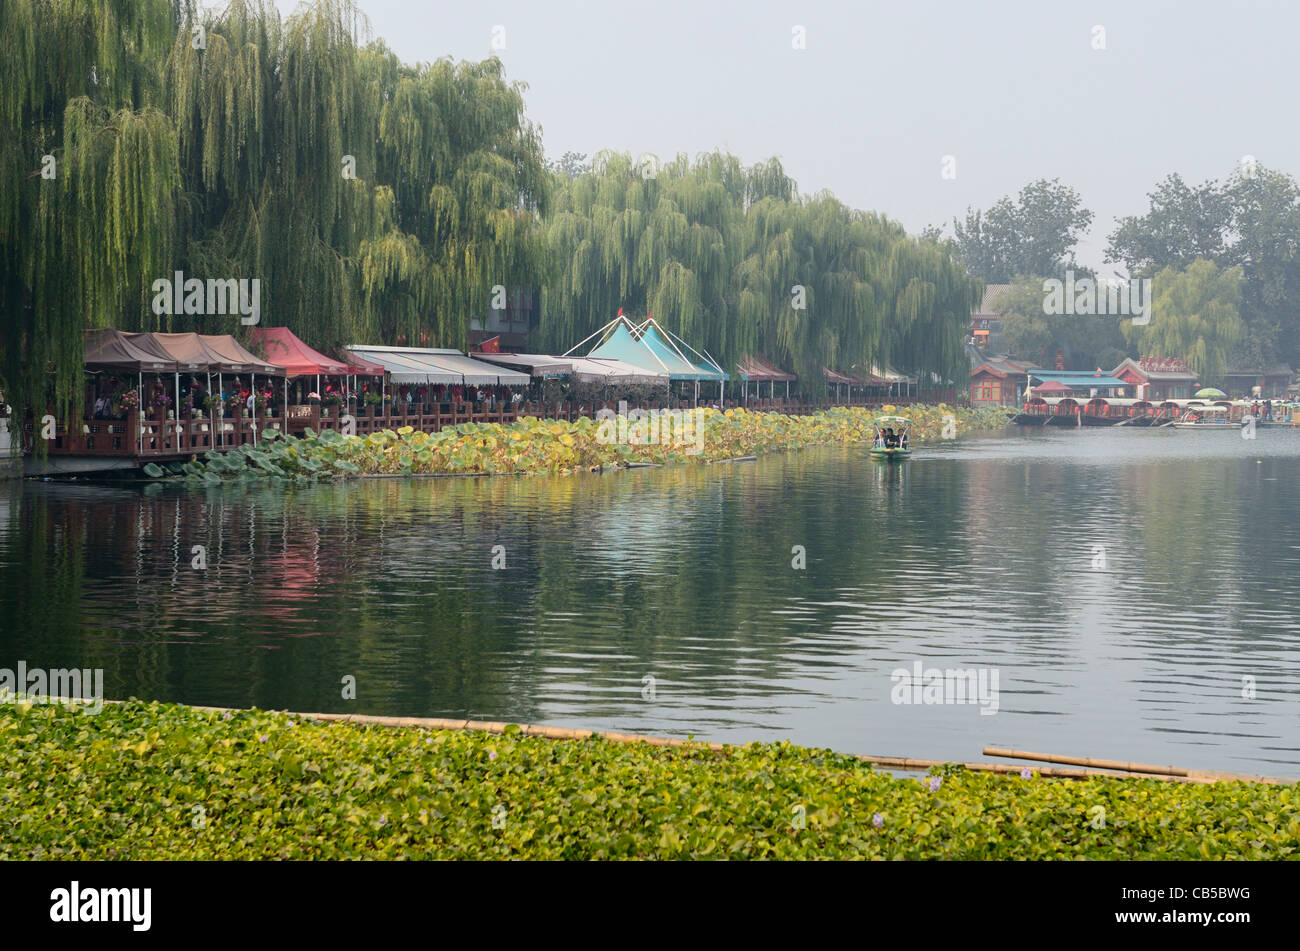 Willow trees and restaurants along Qianhai Lake in the Shichahai area of Beijing China - Stock Image